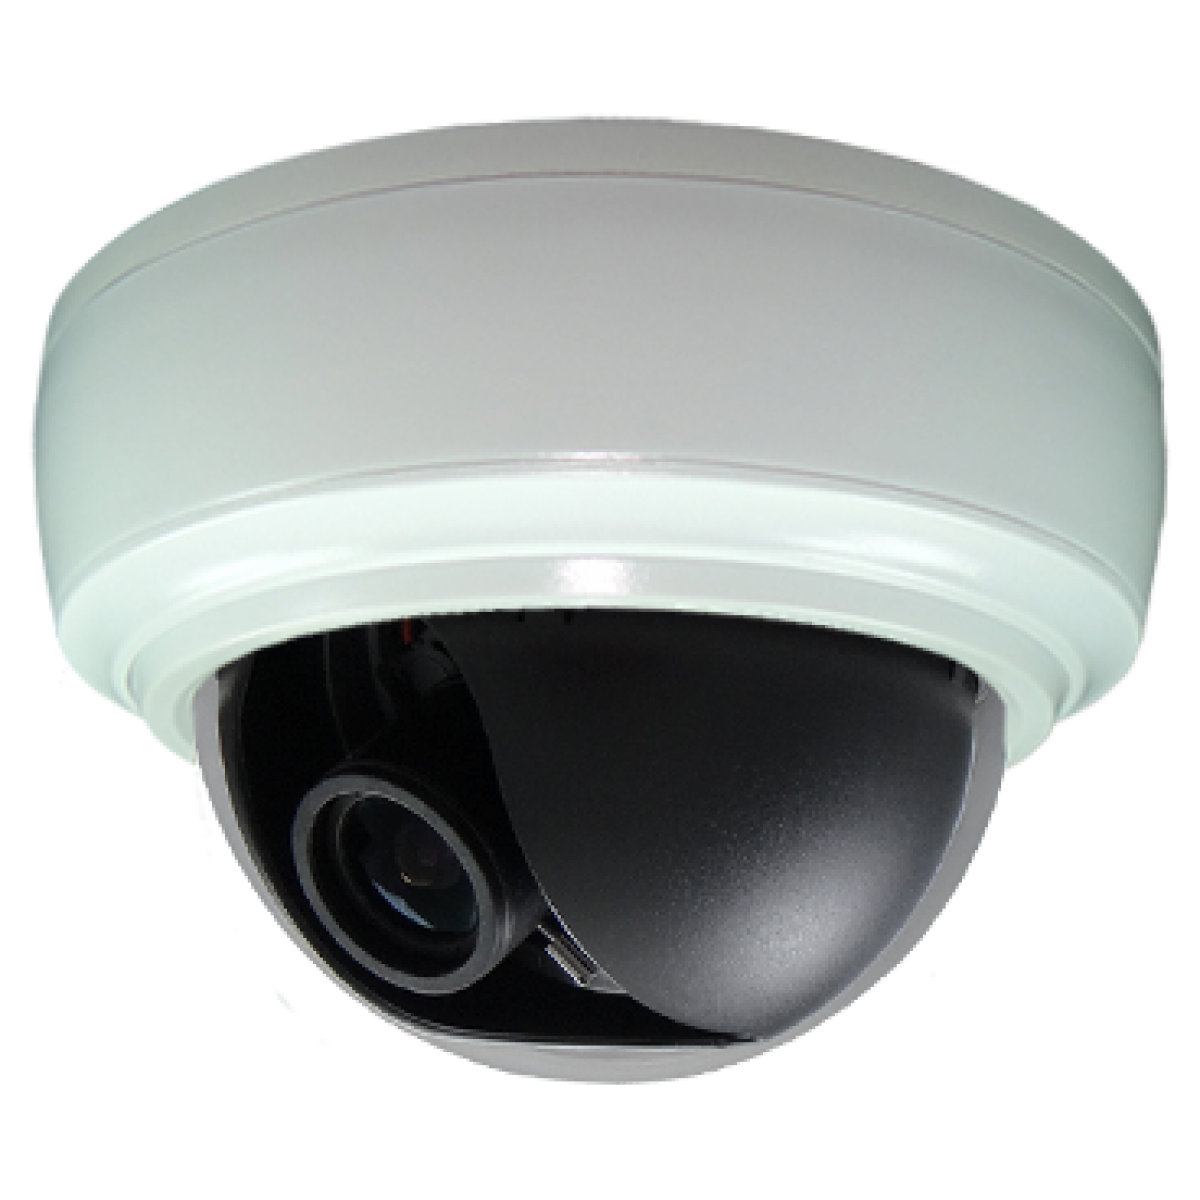 Bnc Indoor Dome Camera E Sensor 960h 12vdc 24vac